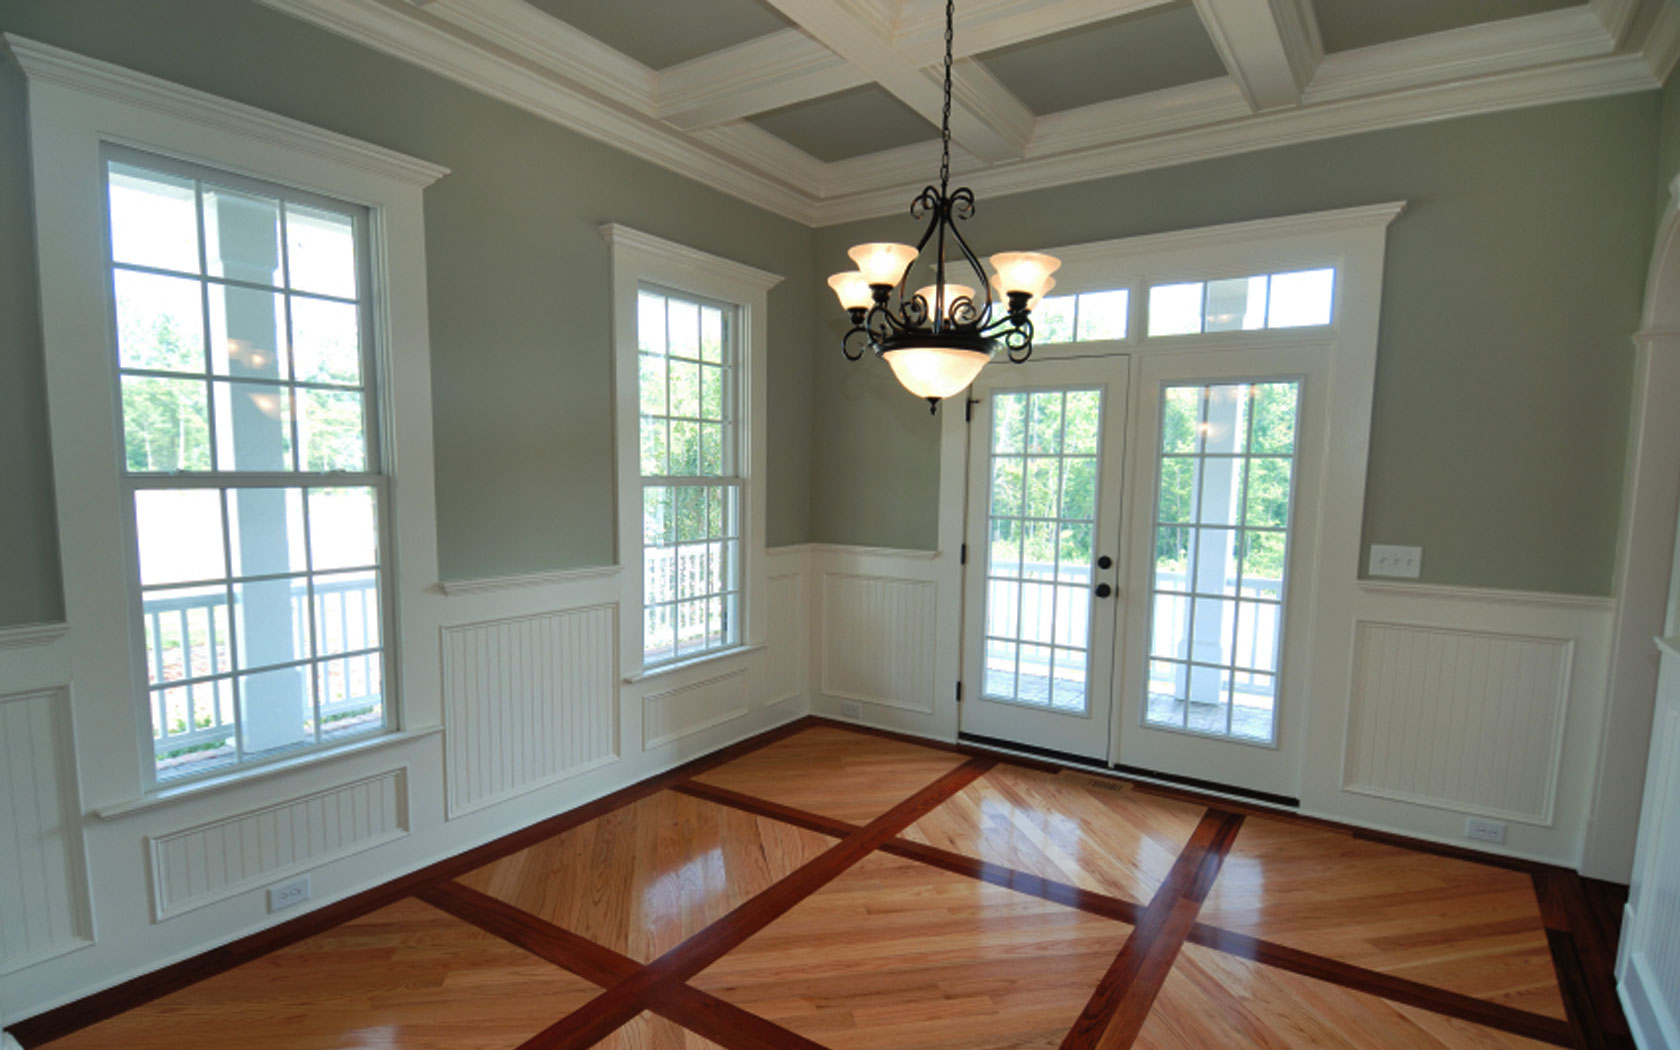 Interior Exterior Painting In Boston With Pretty Wooden Laminating Floir Plus Windows Together Gl